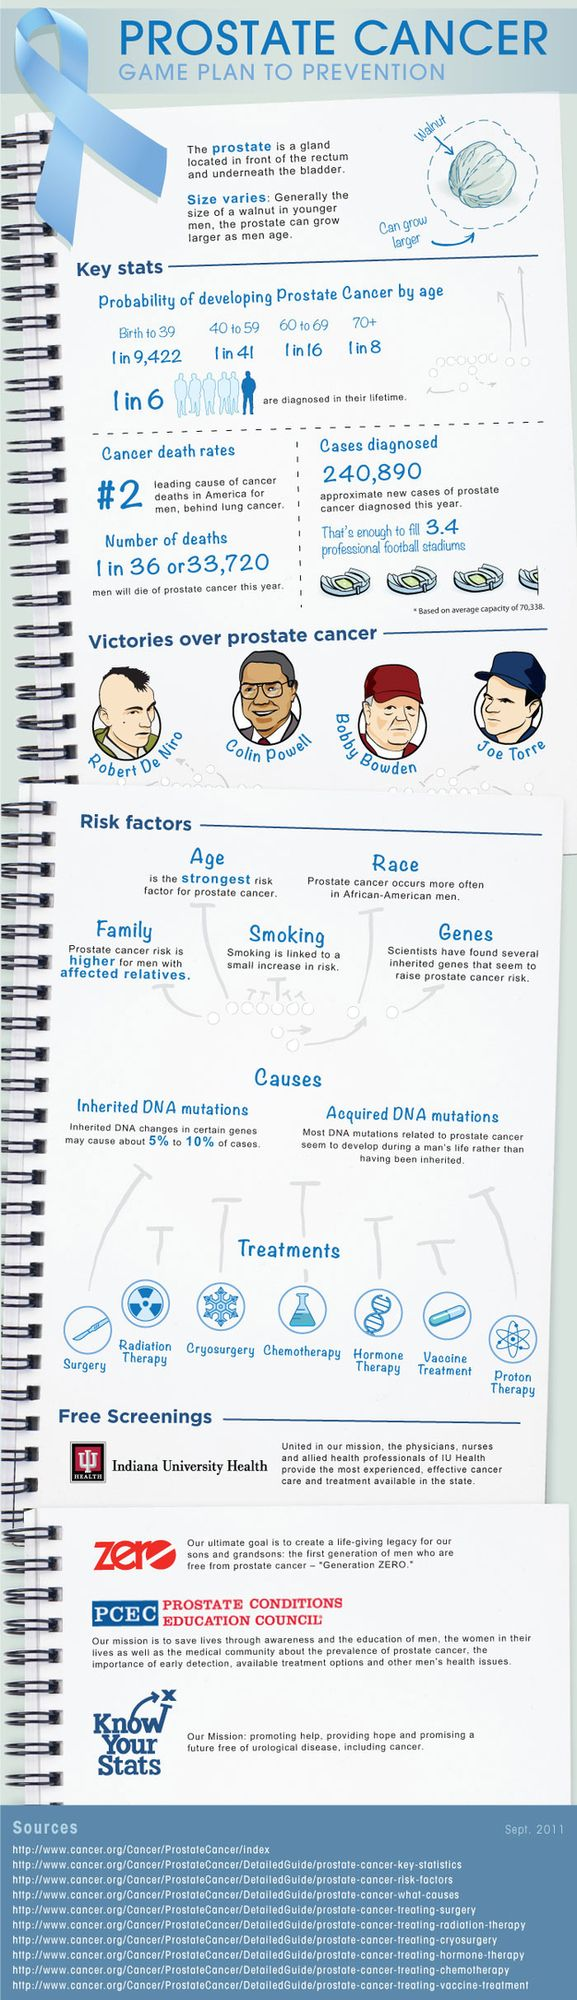 Prostate cancer game plan to prevention.  Please have the man in your life have a check up before its to late.